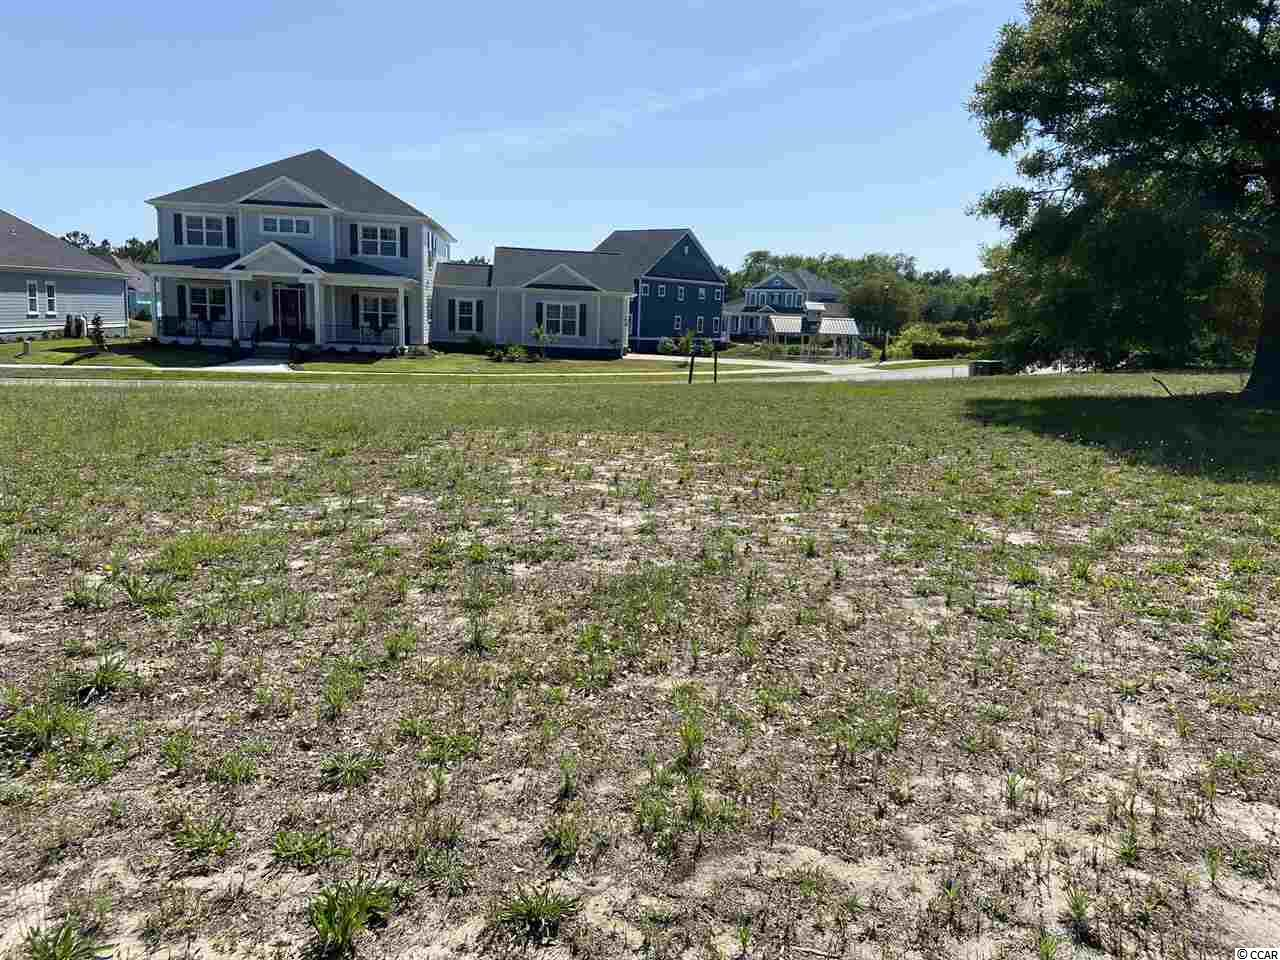 Now is your chance to own a gorgeous 0.21 acre lot in Charleston Landing!   Charleston Landing is a unique community located east of 17 in North Myrtle Beach, filled with luxurious amenities. THIS is where 'Lowcountry' meets 'Coastal Living'!  You can expect to find friendly residents enjoying their Club House/Ionized Pool overlooking the wide open Marsh, going down the slide in the gated neighborhood playground, or maybe even shooting some hoops down at the community's basketball court.   The community even offers a gated storage area for smaller boats and recreational vehicles, onsite for its homeowners convenience.  Come get a taste of that first-class Charleston Southern Charm..          For more information about this neighborhood, and its many offerings-  Visit the link below:  charlestonlandinghoa.com/about-charelston-landing/  OR  Facebook: www.facebook.com/Charleston-Landing-HOA-148132191874869/